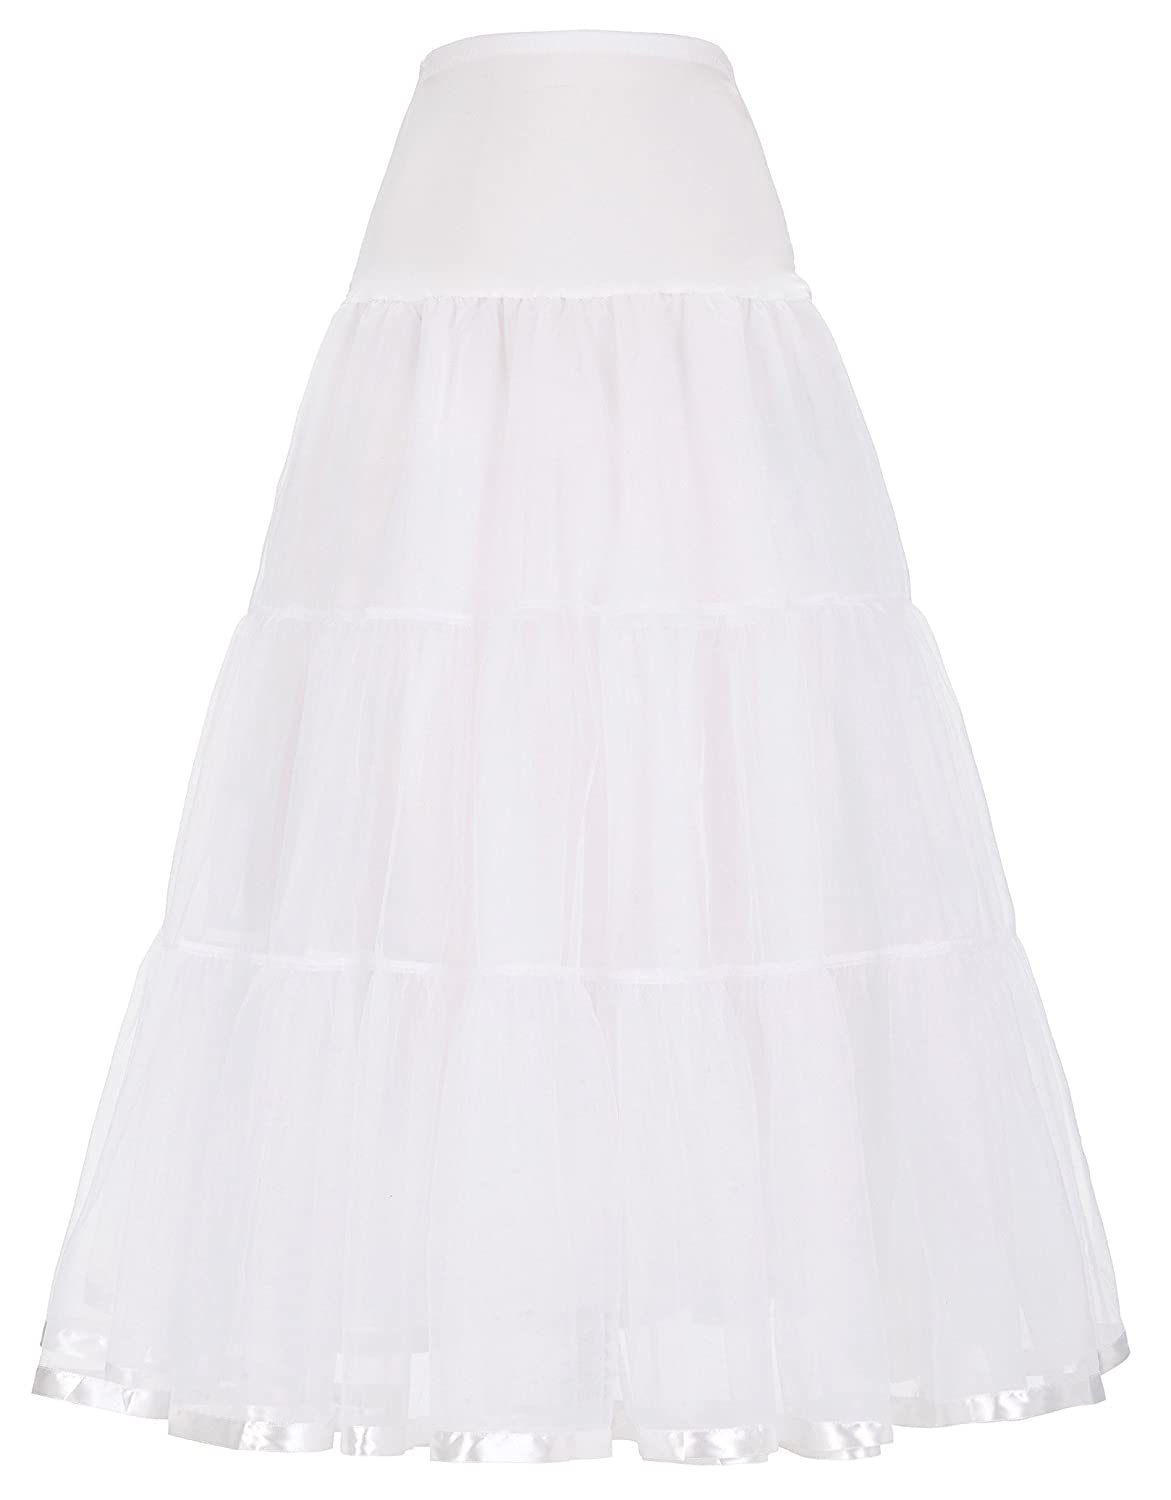 GRACE KARIN Women's Ankle Length Petticoats Bridal Slips